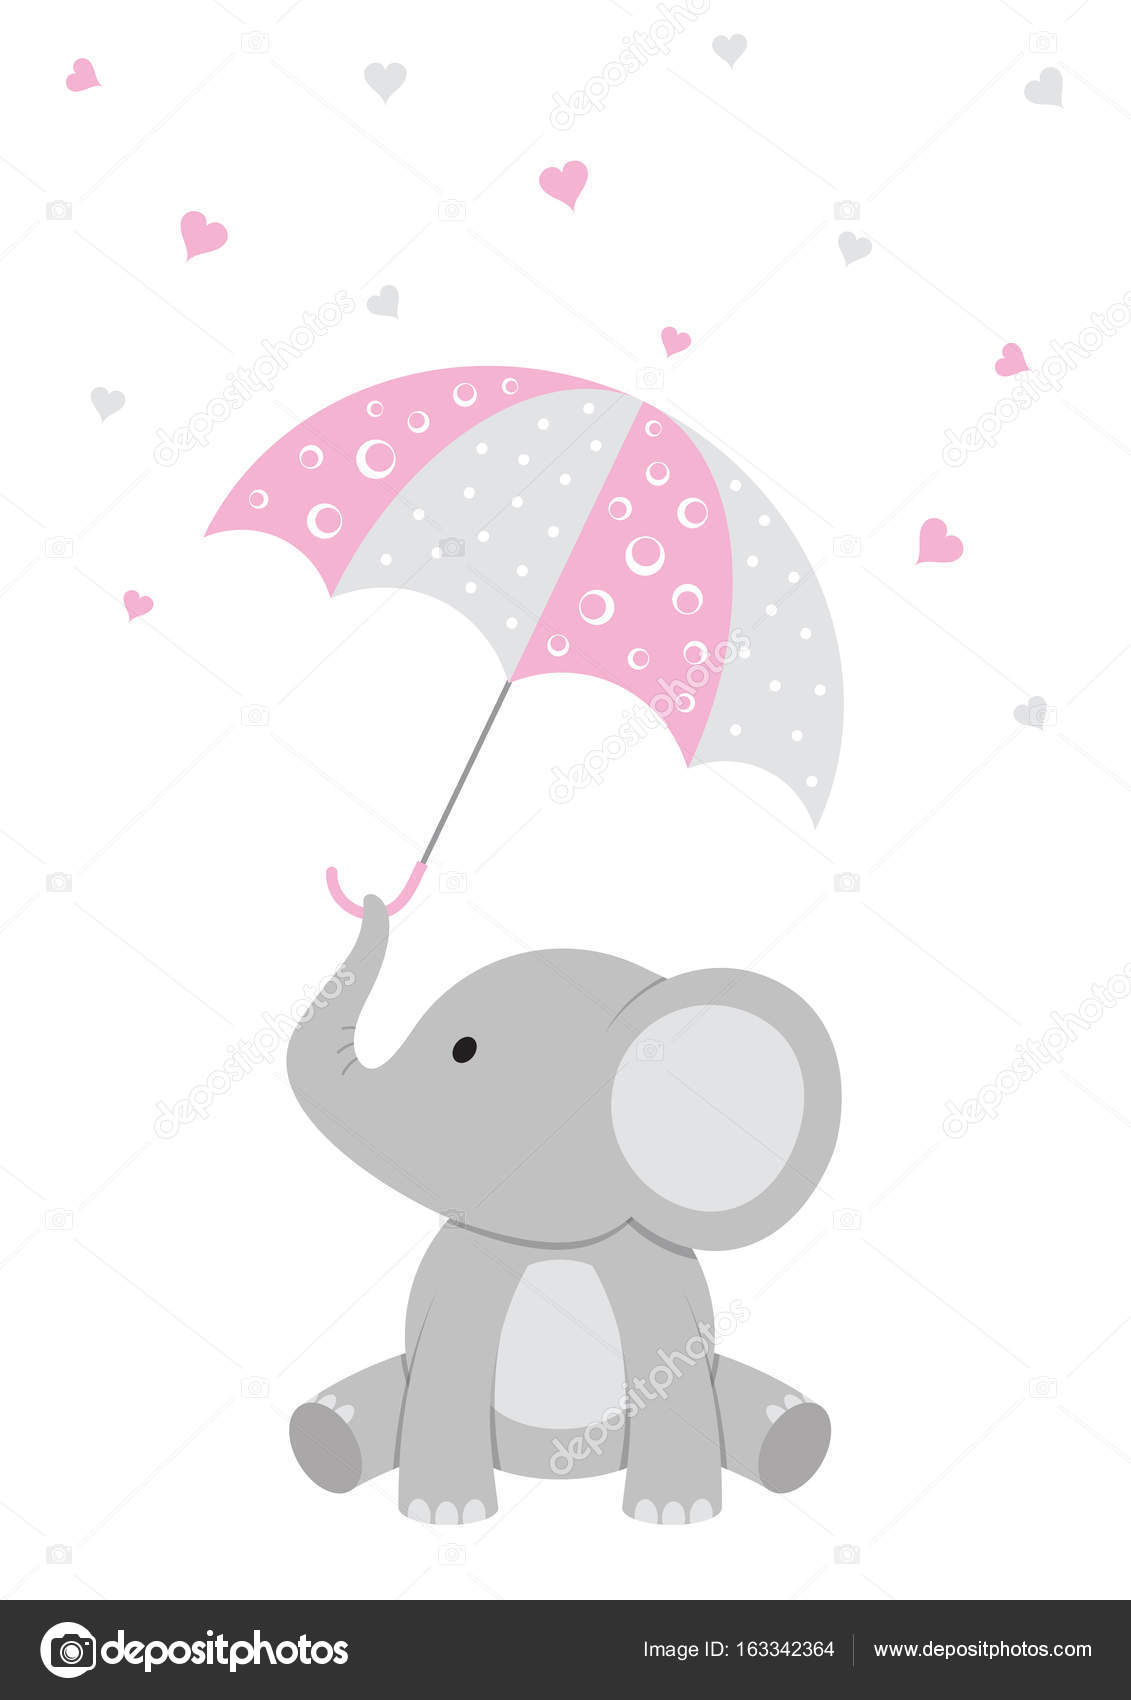 Baby Elephant Pink Baby Shower Stock Vector Rach27 163342364